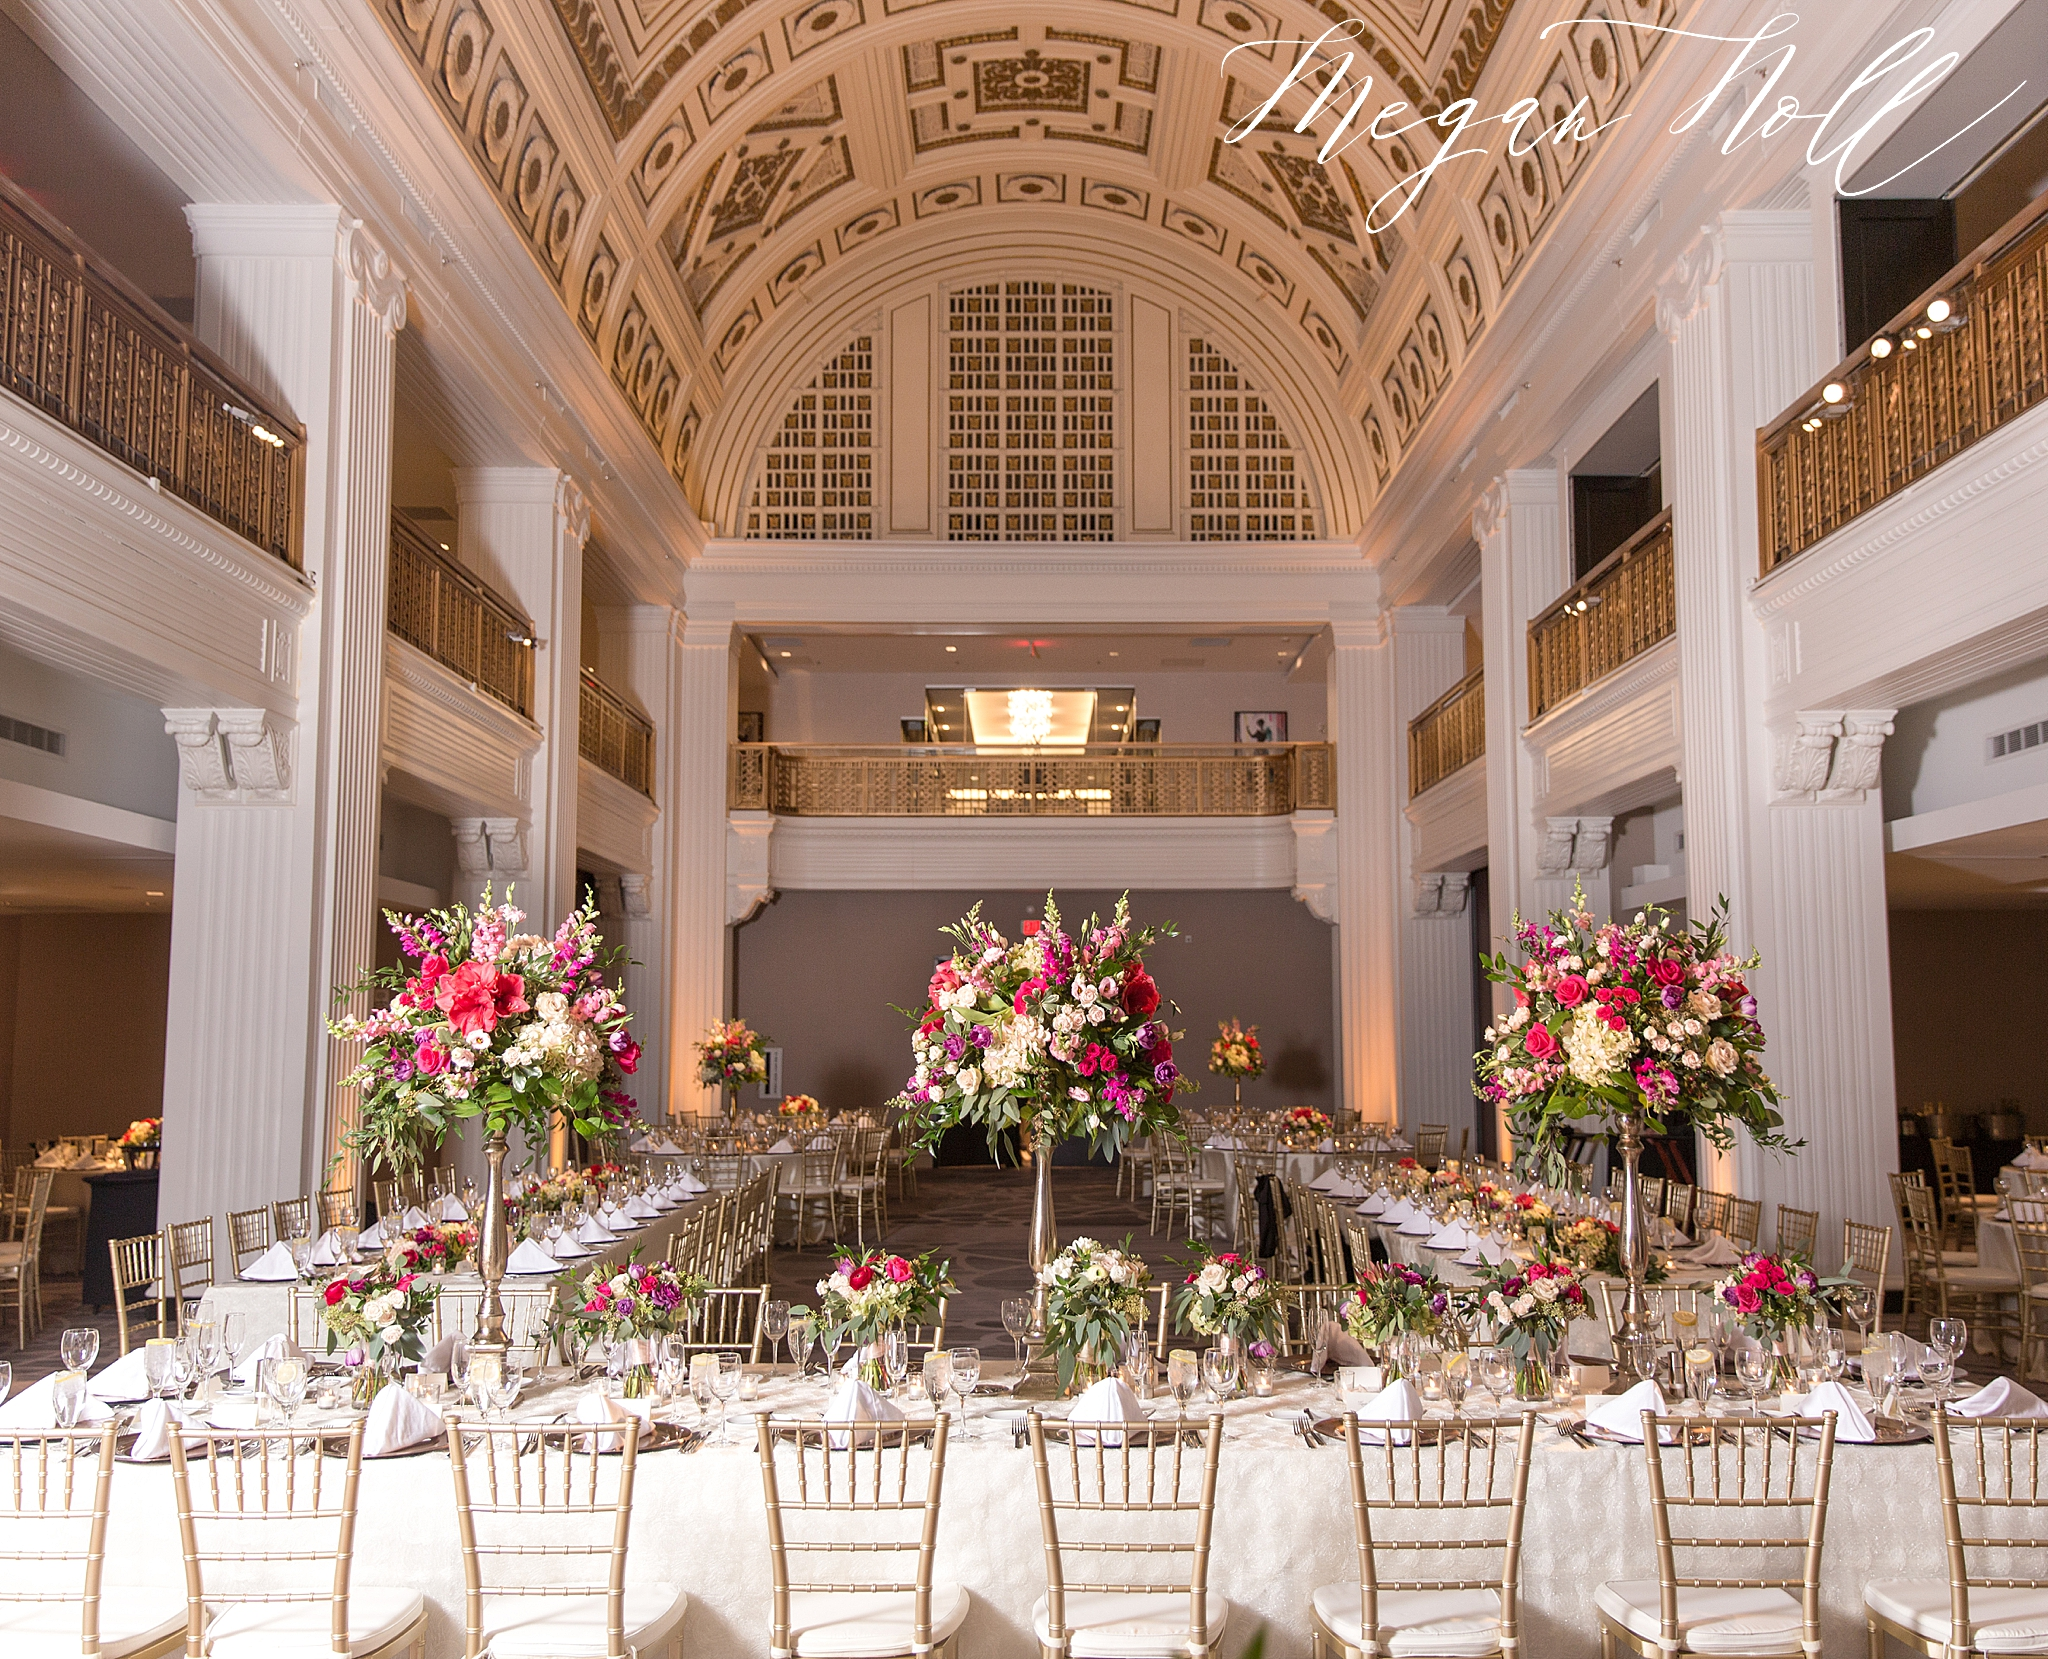 The Renaissance is a top wedding venue in Cincinnati